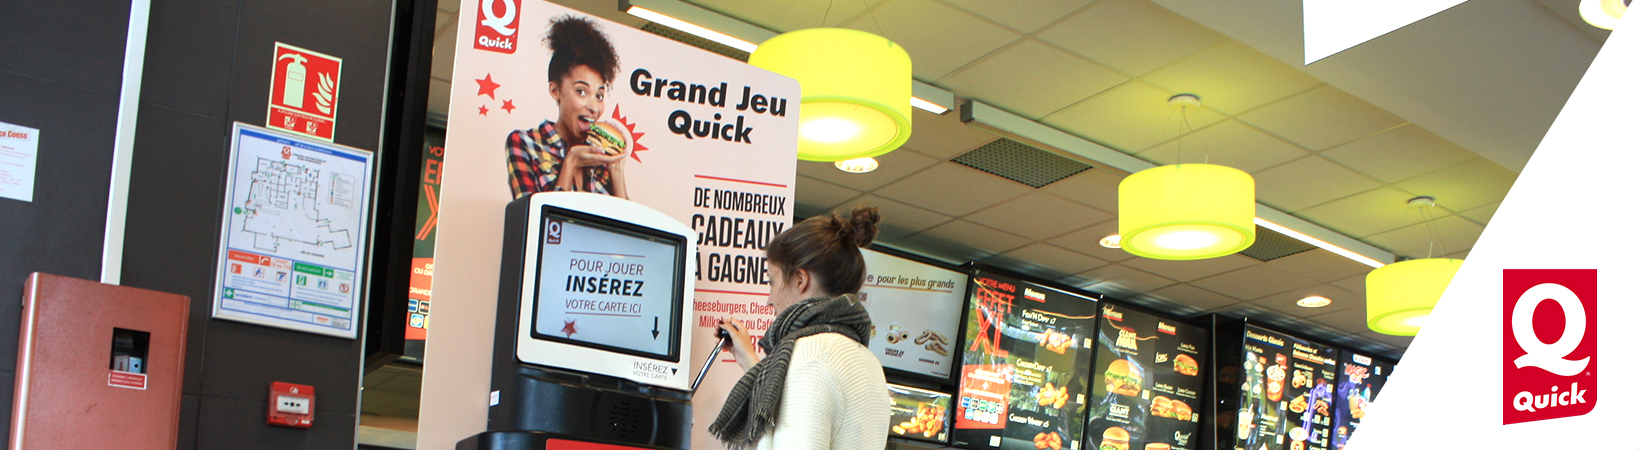 Grand Jeu national Quick - Borne de jeu